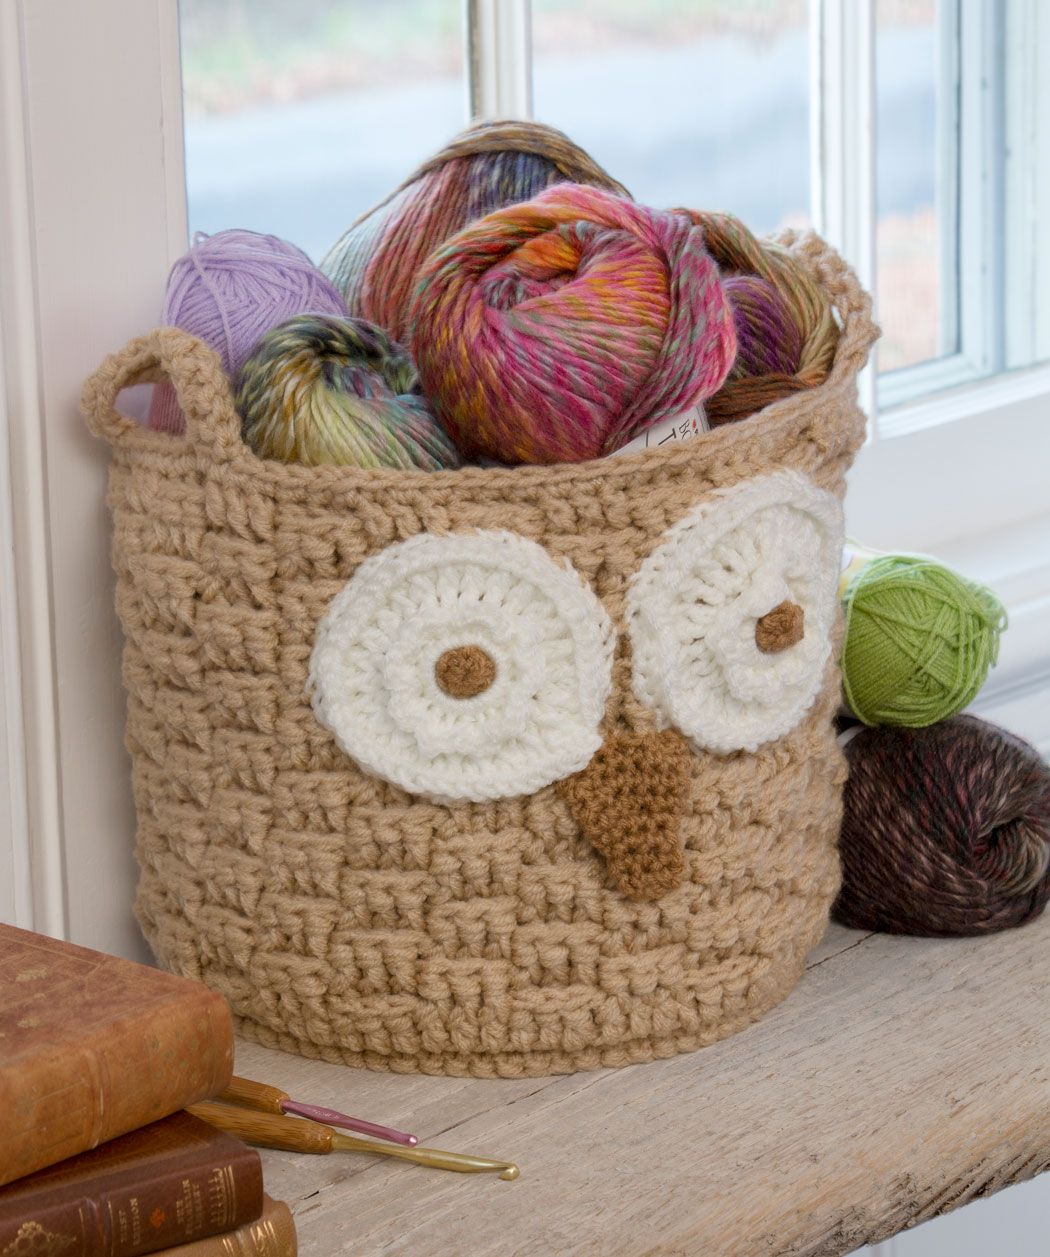 Its a hoot owl container freebie crochet must make this its a hoot owl container free crochet pattern from red heart this is a great basket without the owl face to storing crochet hearts and small projects bankloansurffo Images